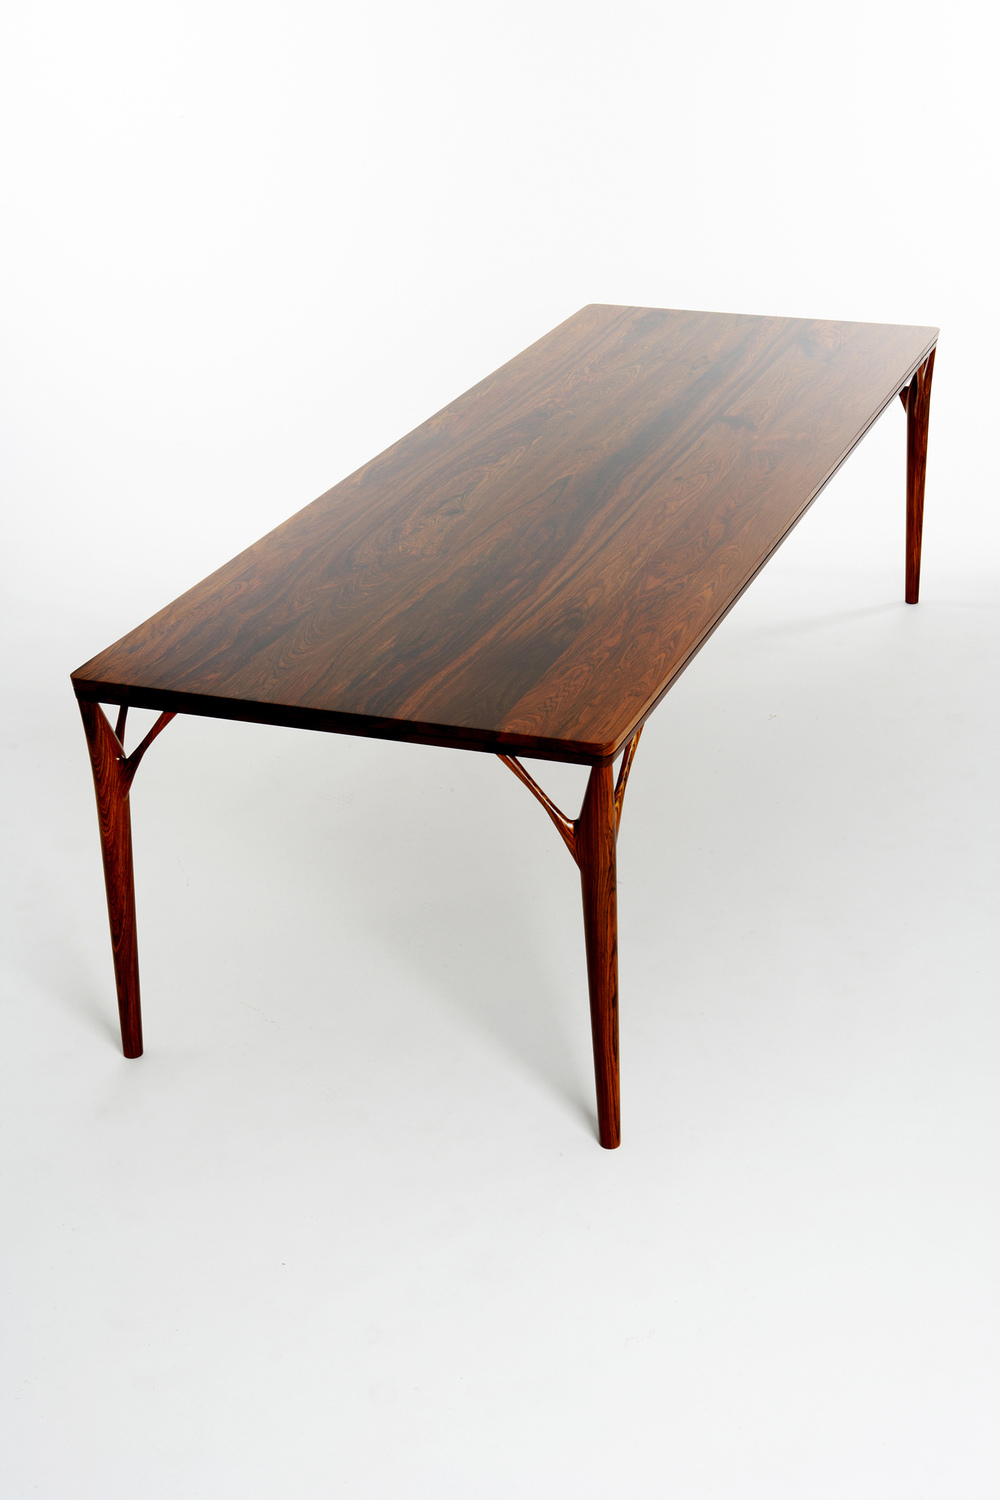 PD55 dining table3_resize.jpg